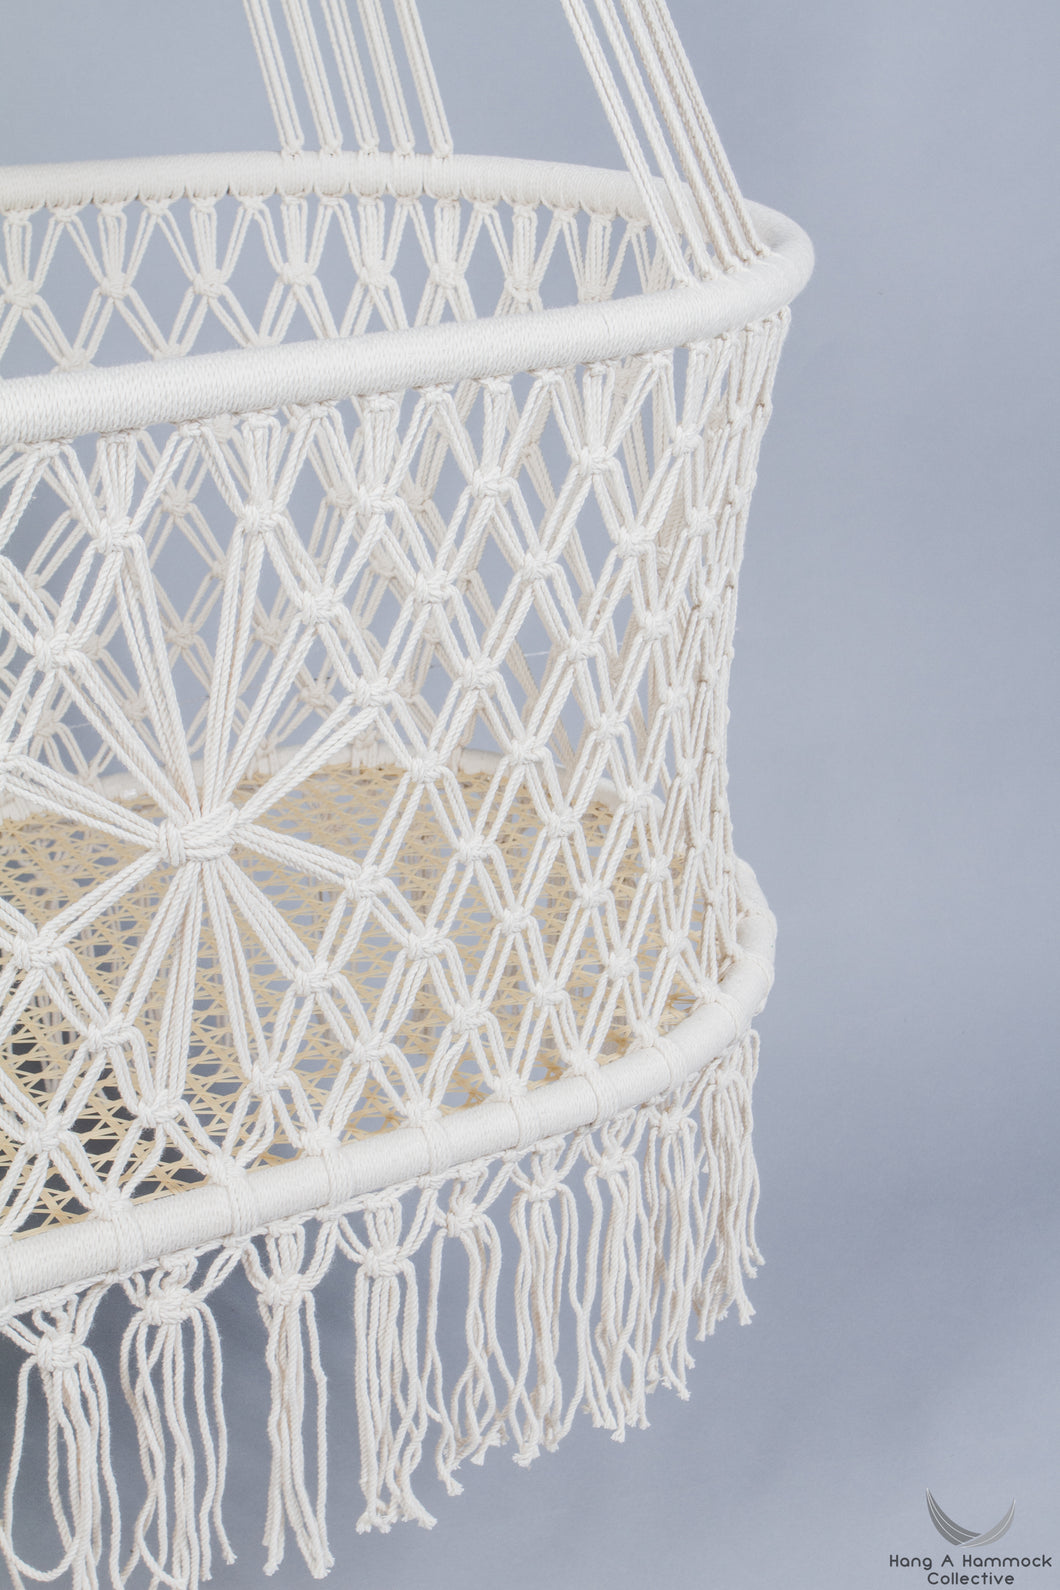 hanging Bassinet - handwoven base detail - studio picture